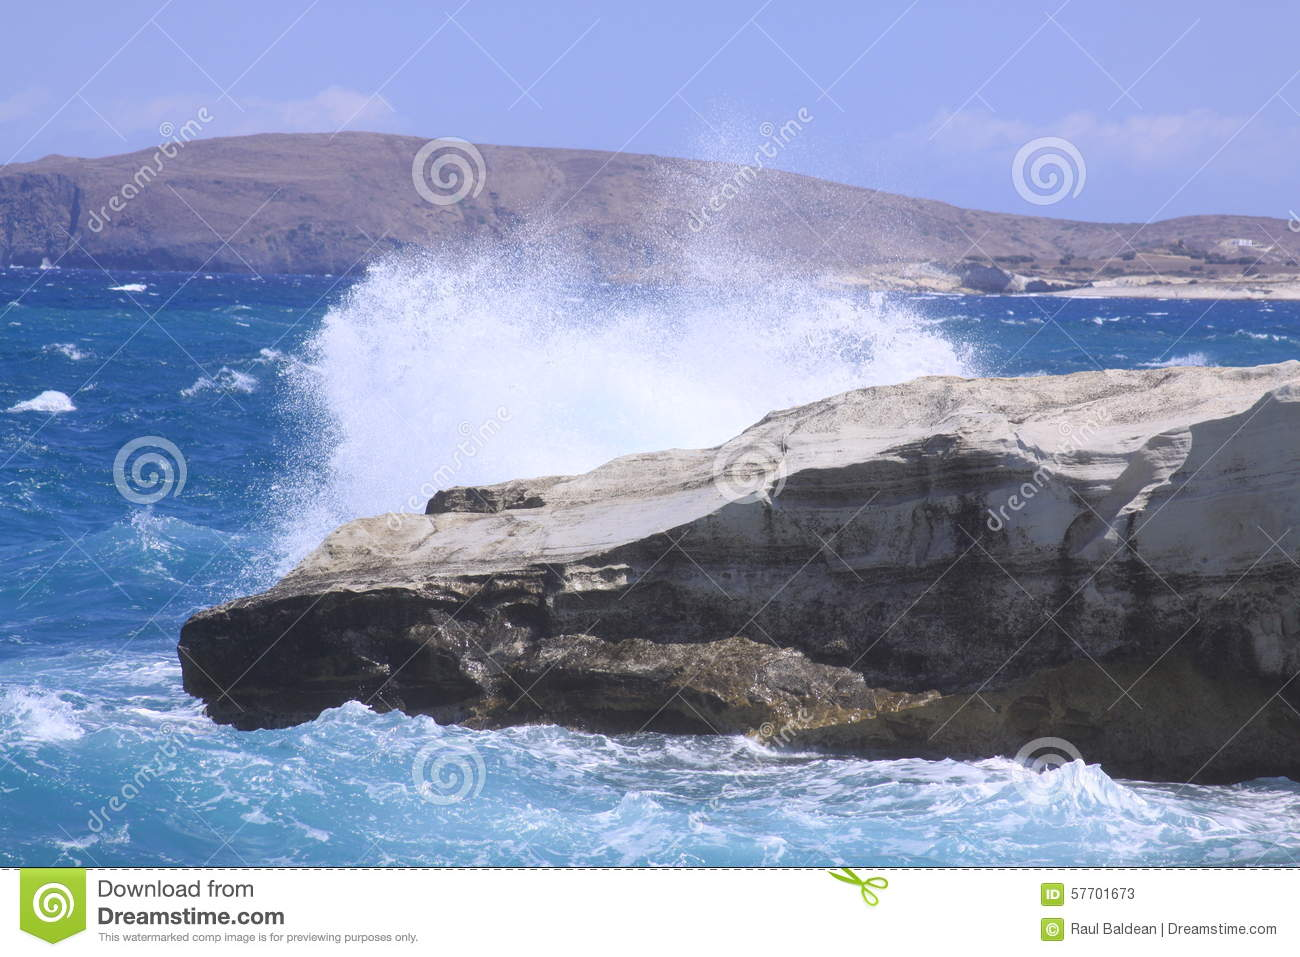 Wave breaking at Sarakiniko beach on Milos island